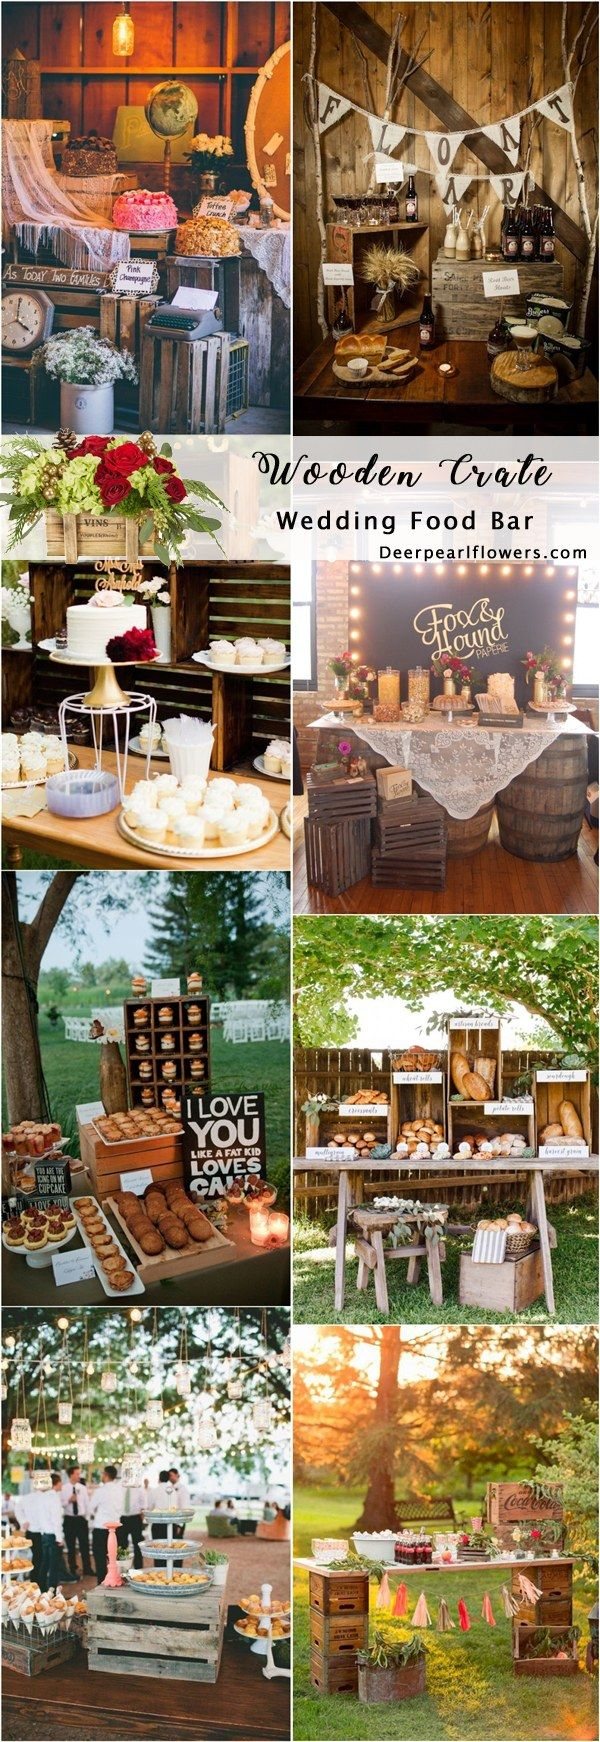 best country wedding ideas images on Pinterest  Engagements